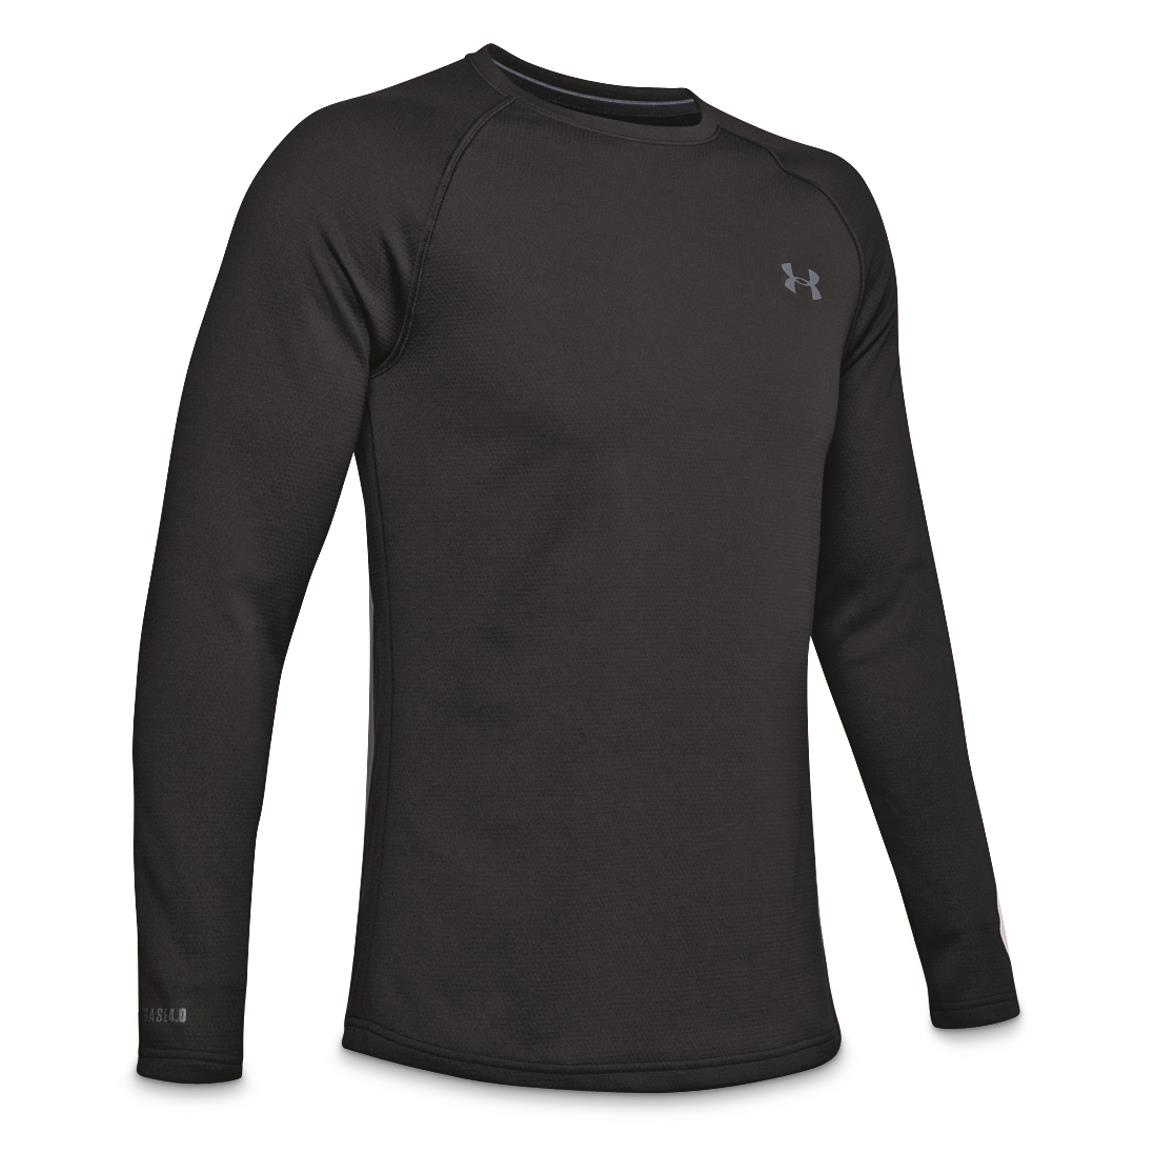 Under Armour Men's Base 4.0 Base Layer Crew Top, Black/pitch Gray